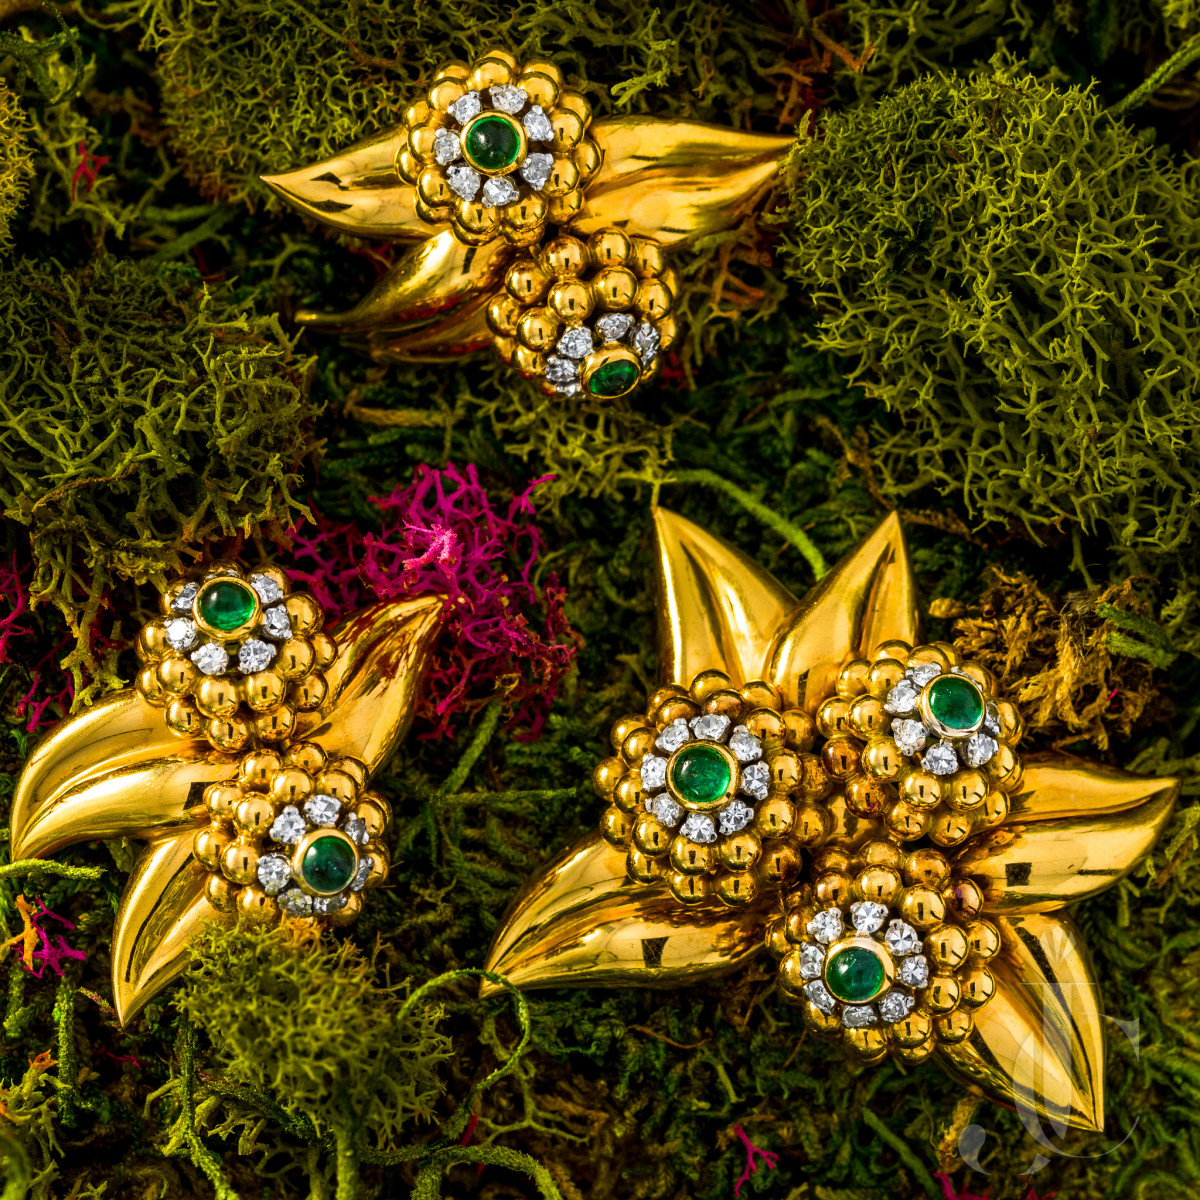 18 Karat Gold, Emerald and Diamond Suite, France